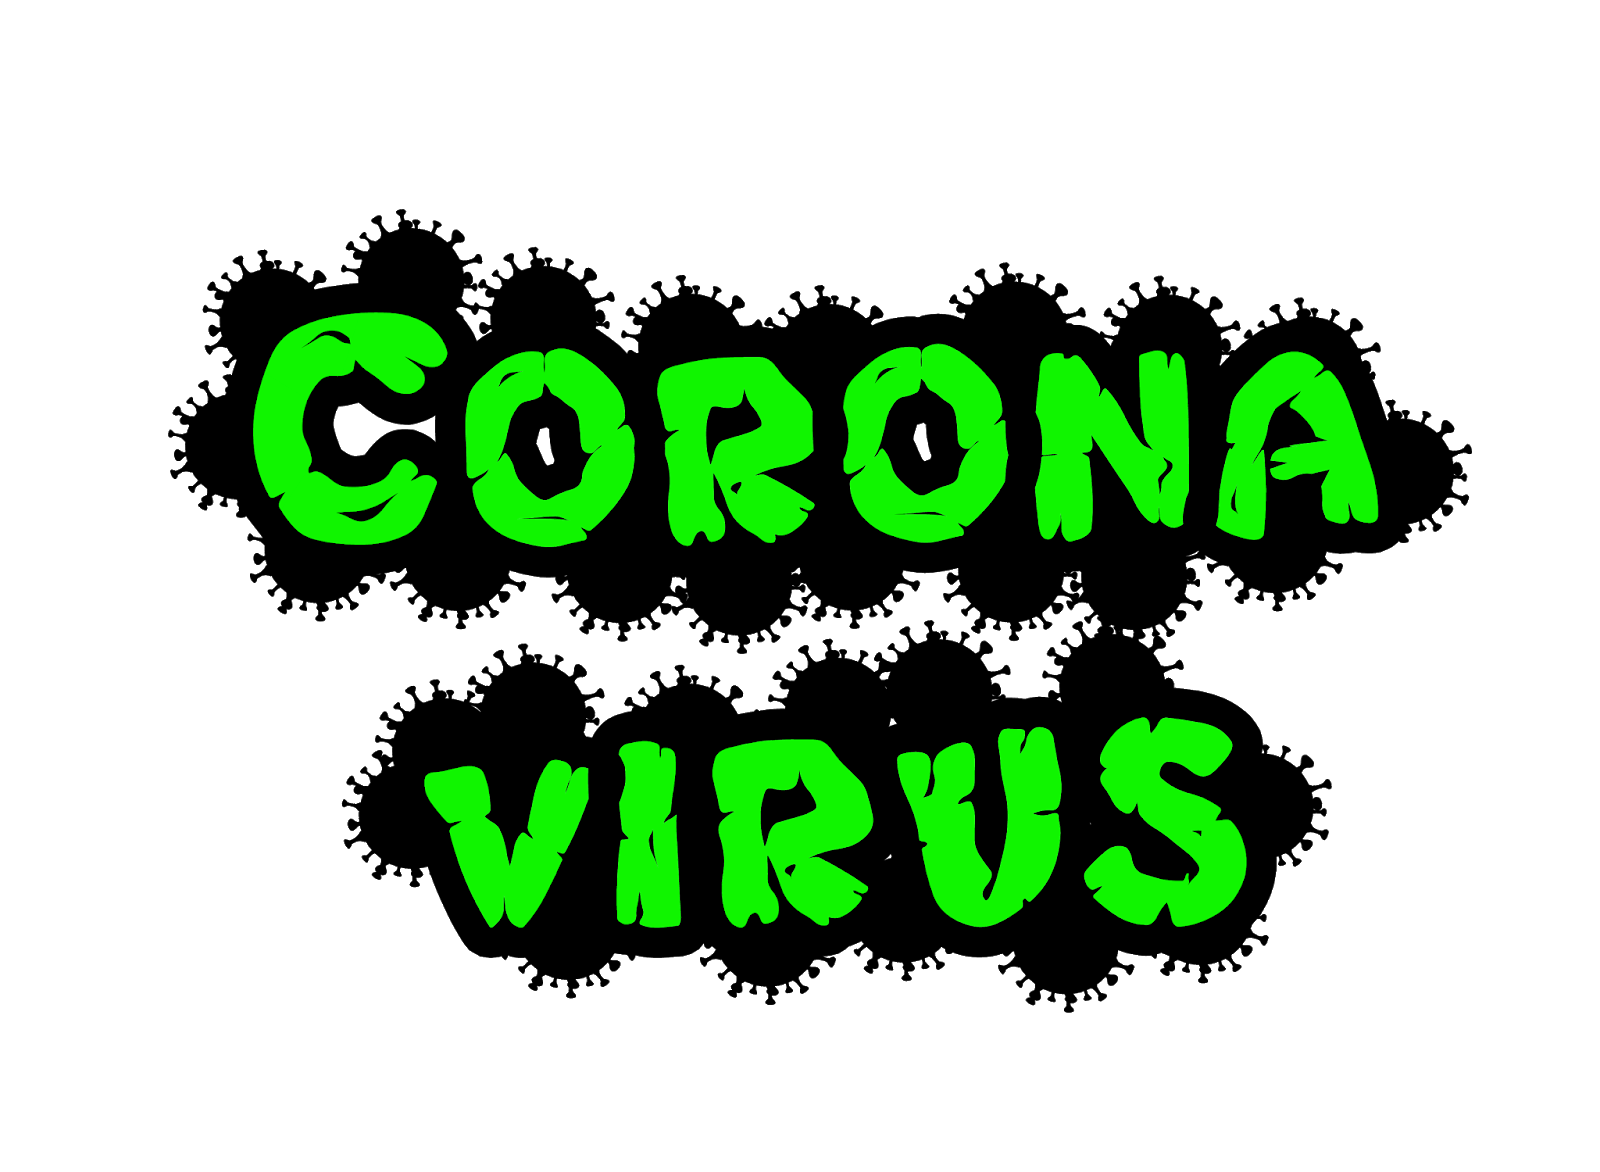 illustrations of virus coronavirus sars-cov-2